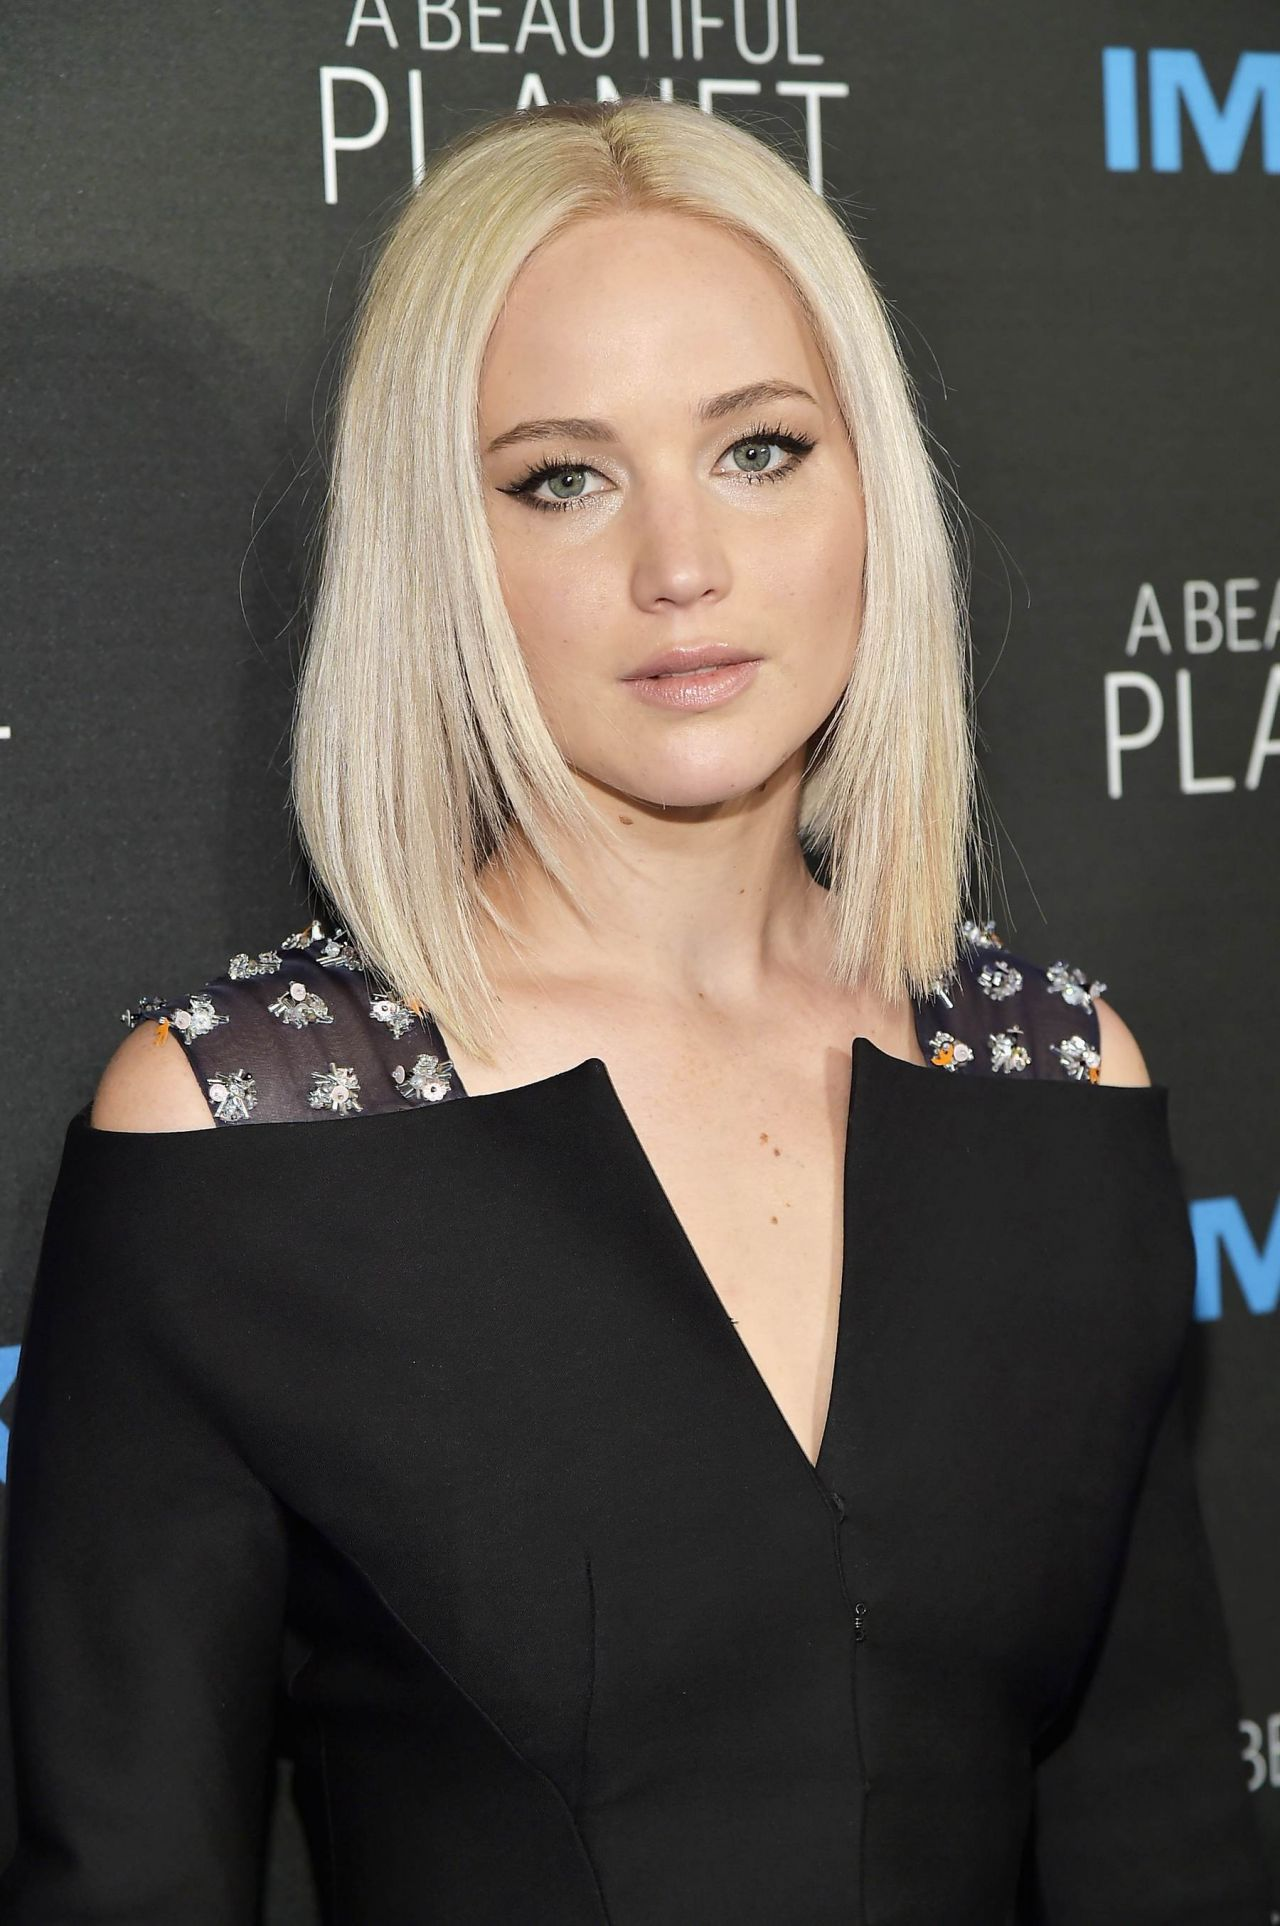 Jennifer Lawrence - 'A Beautiful Planet' Premiere in New York Jennifer Lawrence